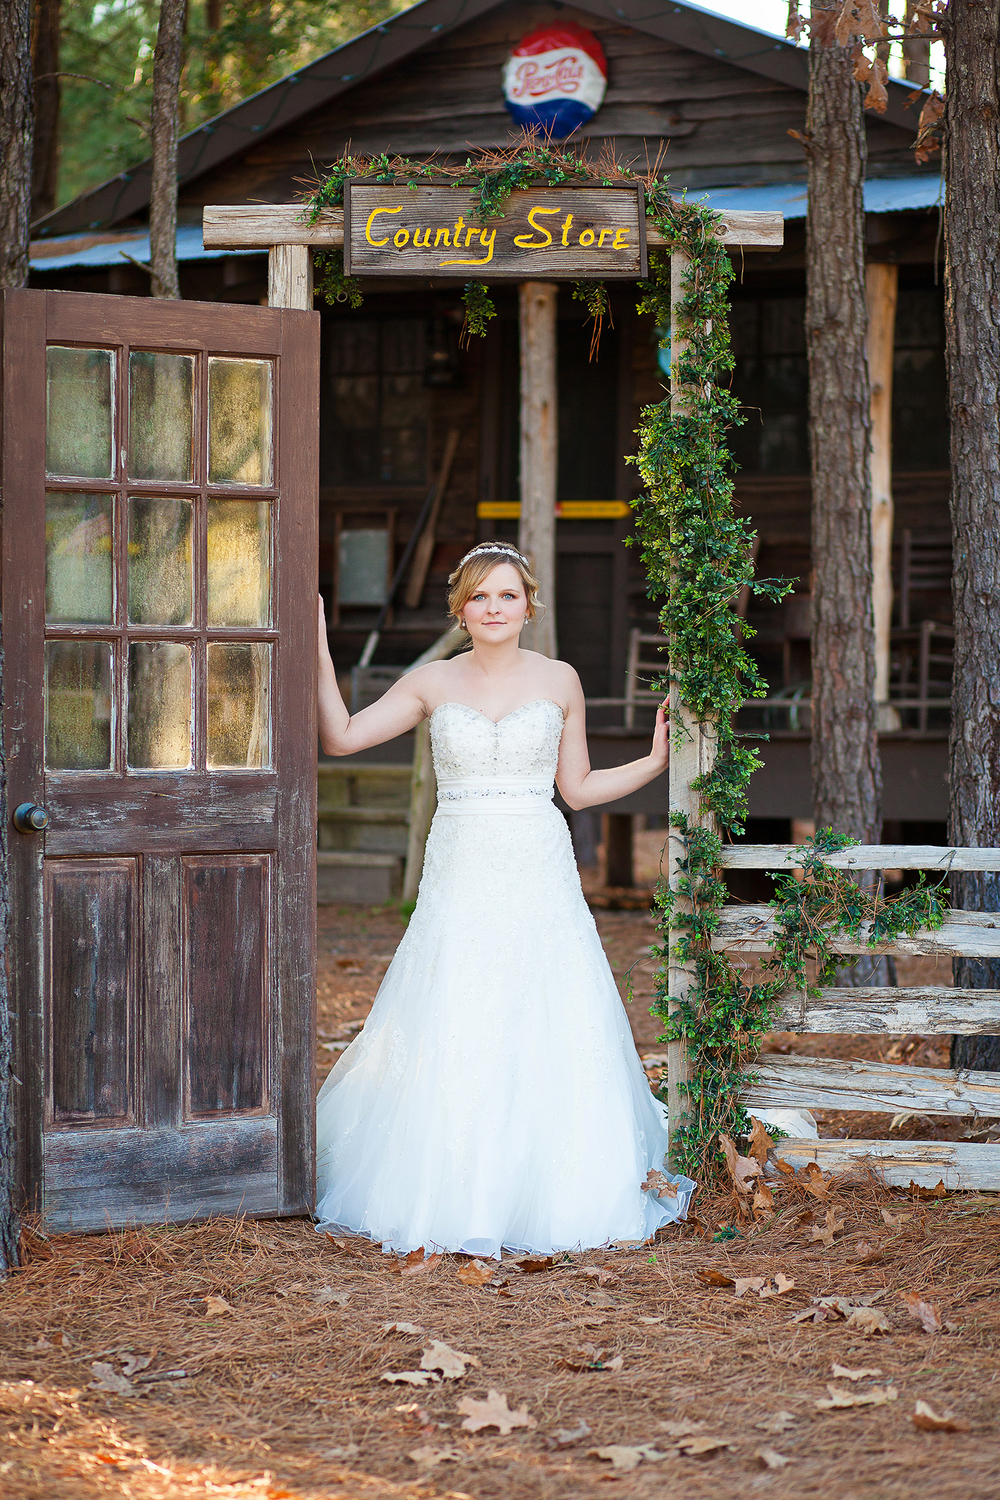 Wedding at Shady Wagon Farm